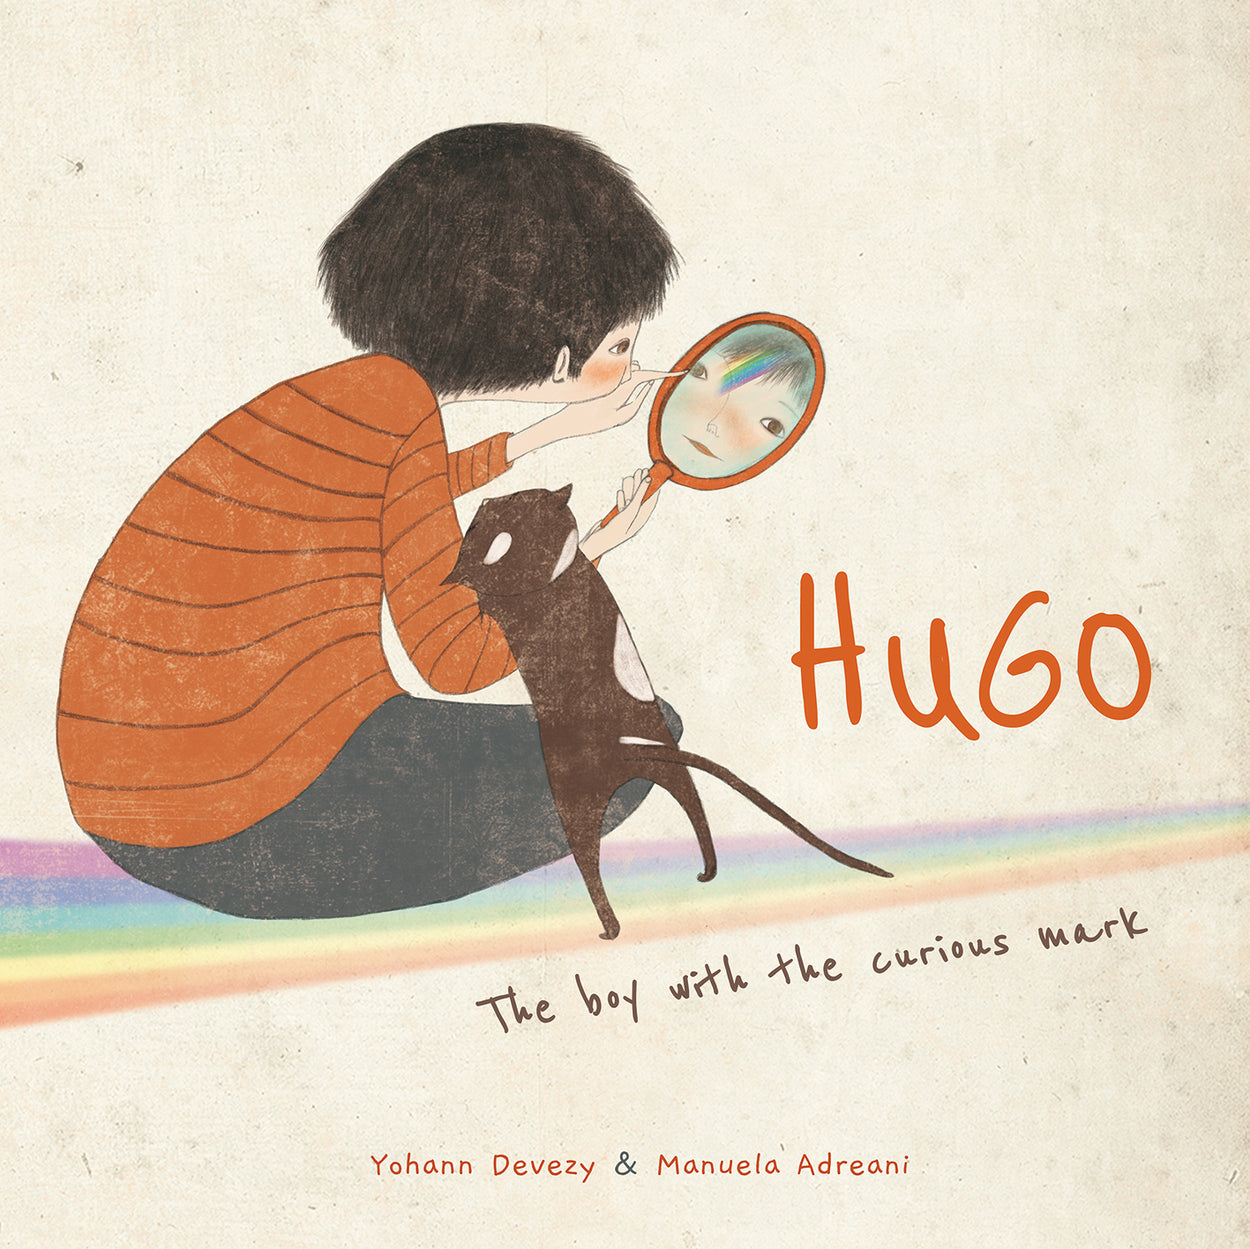 HUGO The boy with the curious mark